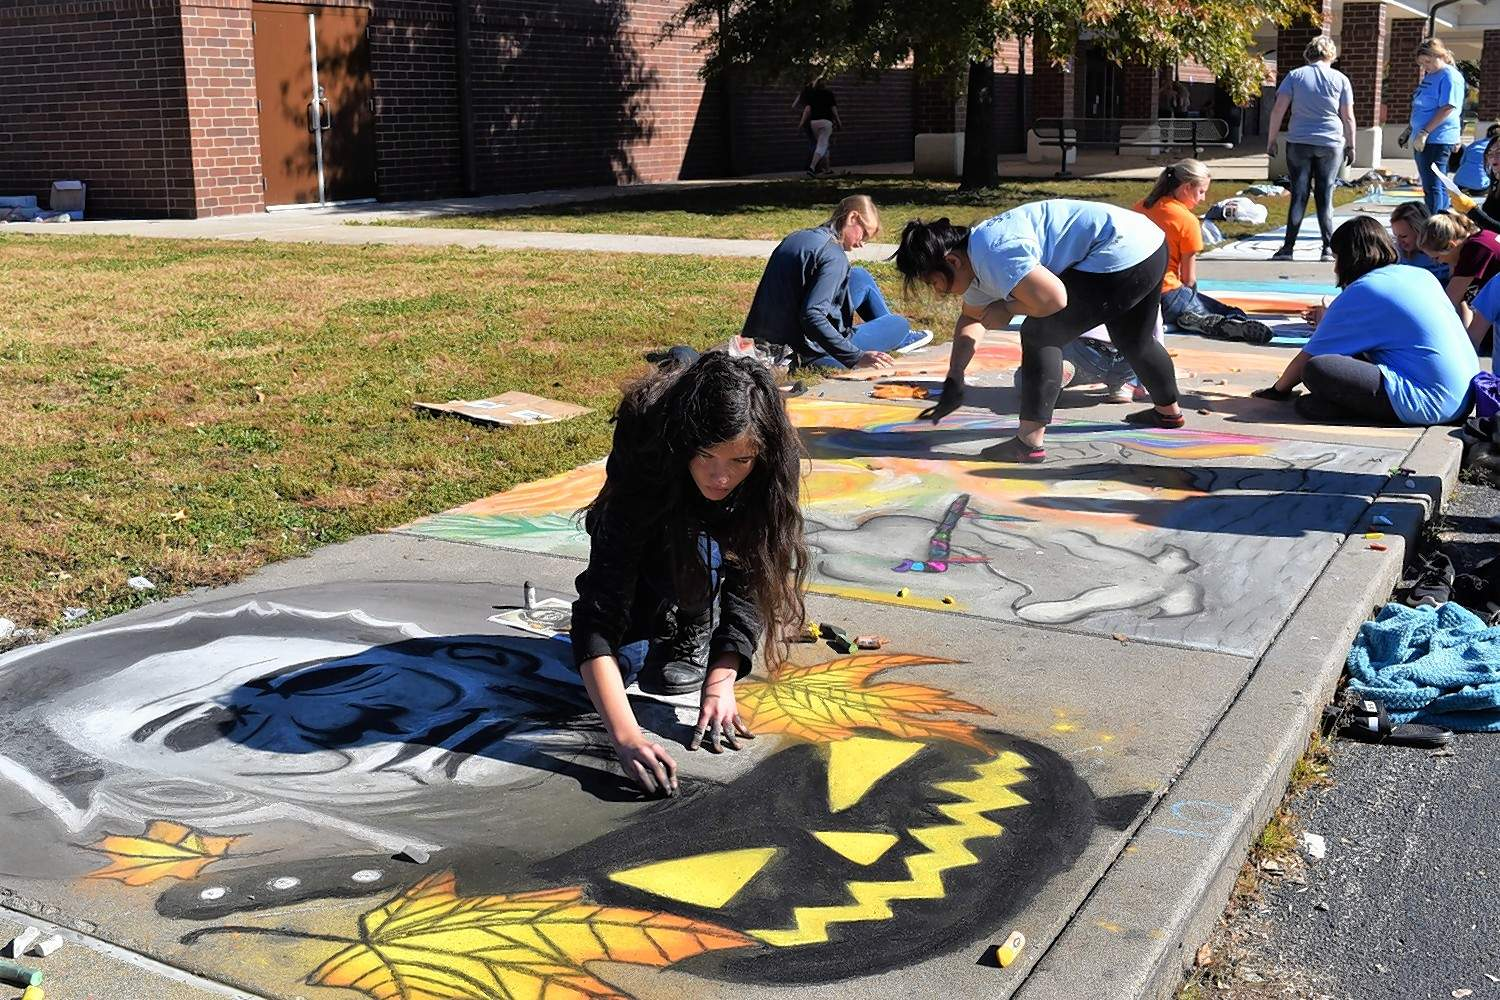 A student artist creates a Halloween-themed image with Michael Myers' mask, a knife and a jack-o'-lantern at Harrisburg High School's chalk contest Monday.